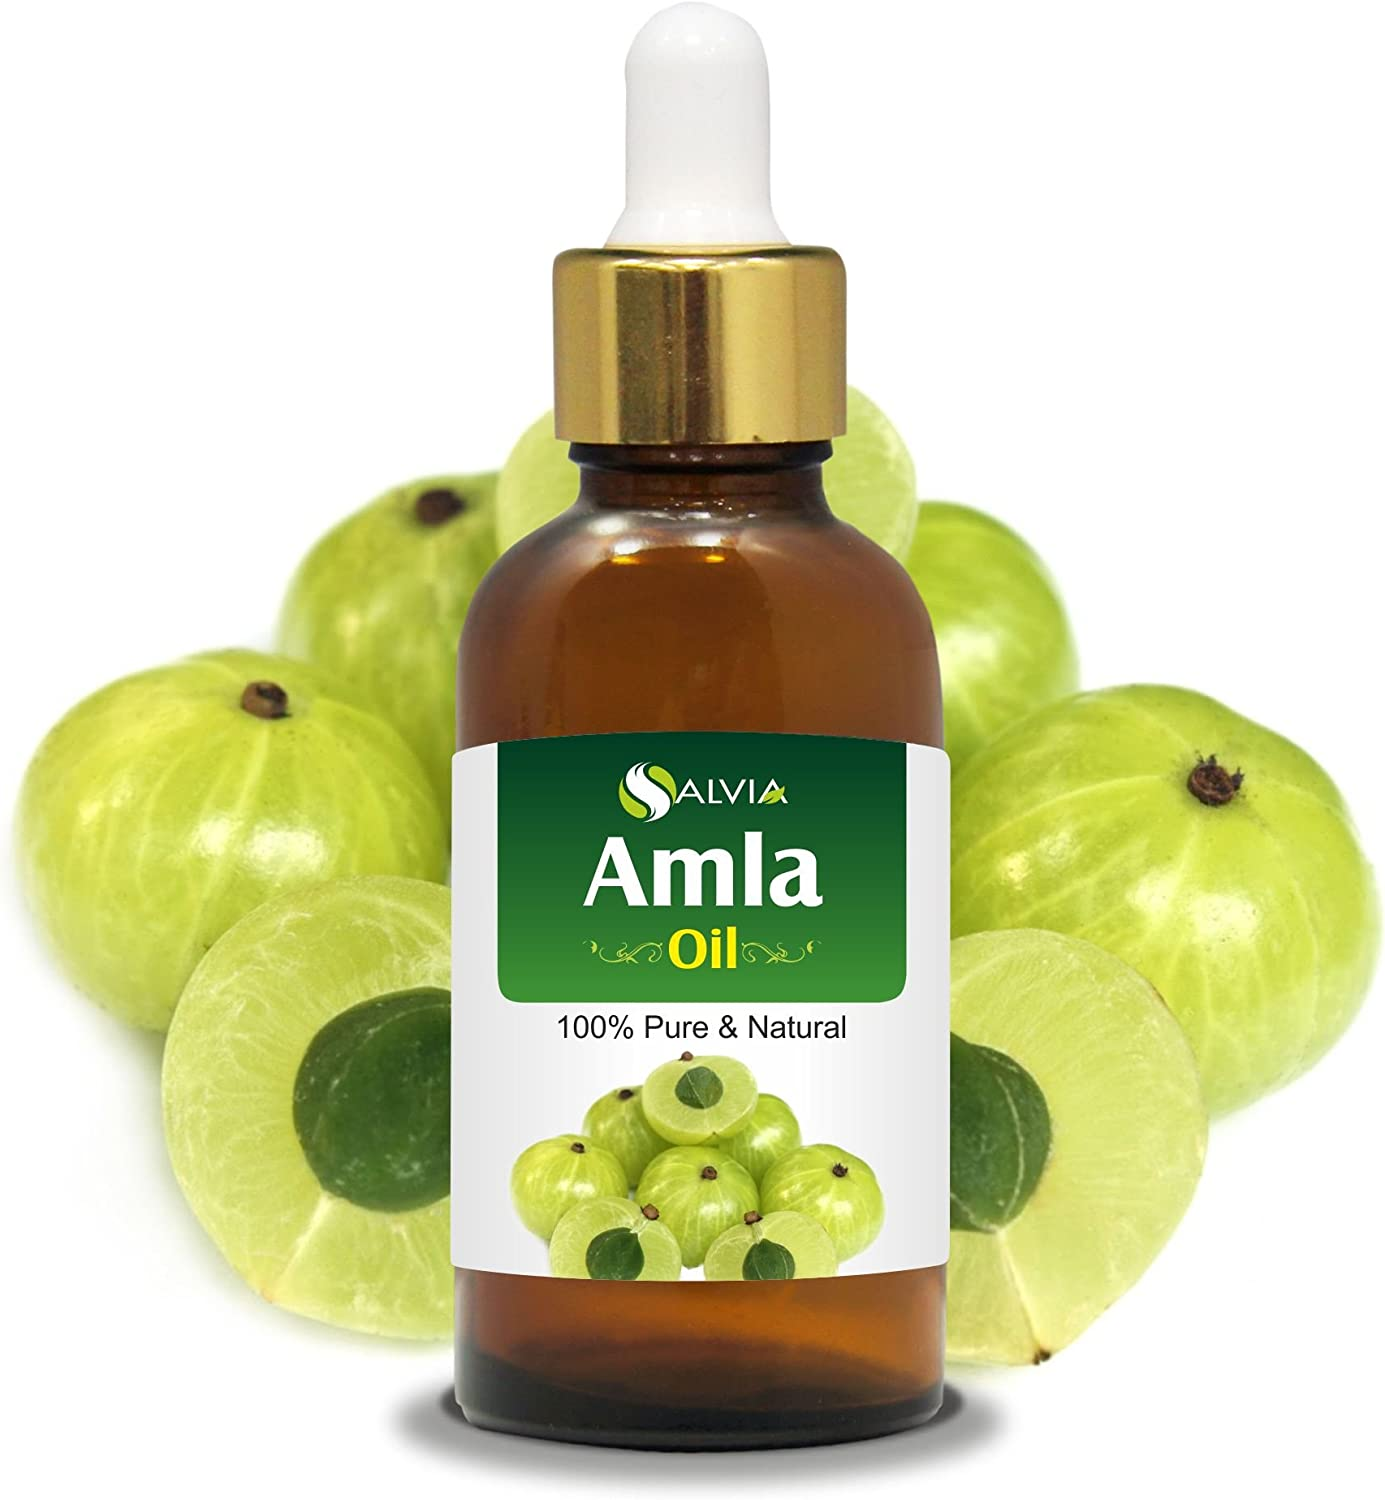 Amla (Emblica Officinalis) Essential Oil 100% Pure & Natural Undiluted Uncut Oil   Best For Aromatherapy   Therapeutic Grade - 15ml with Dropper